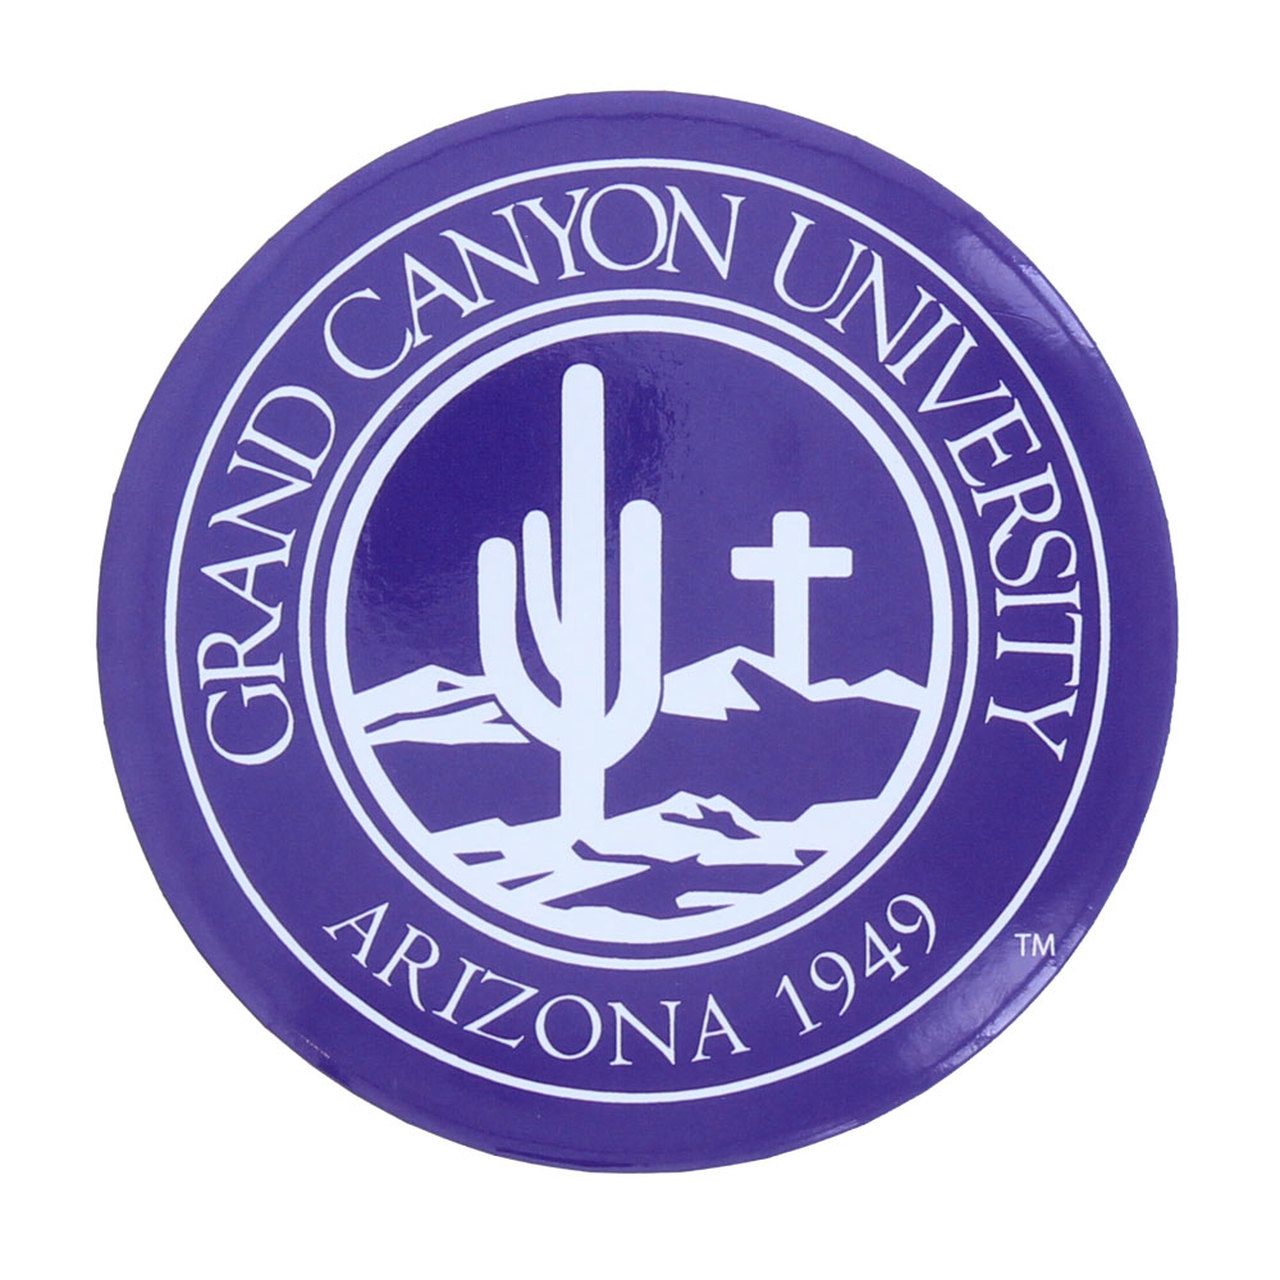 Grand Canyon University Purple Seal Magnet.